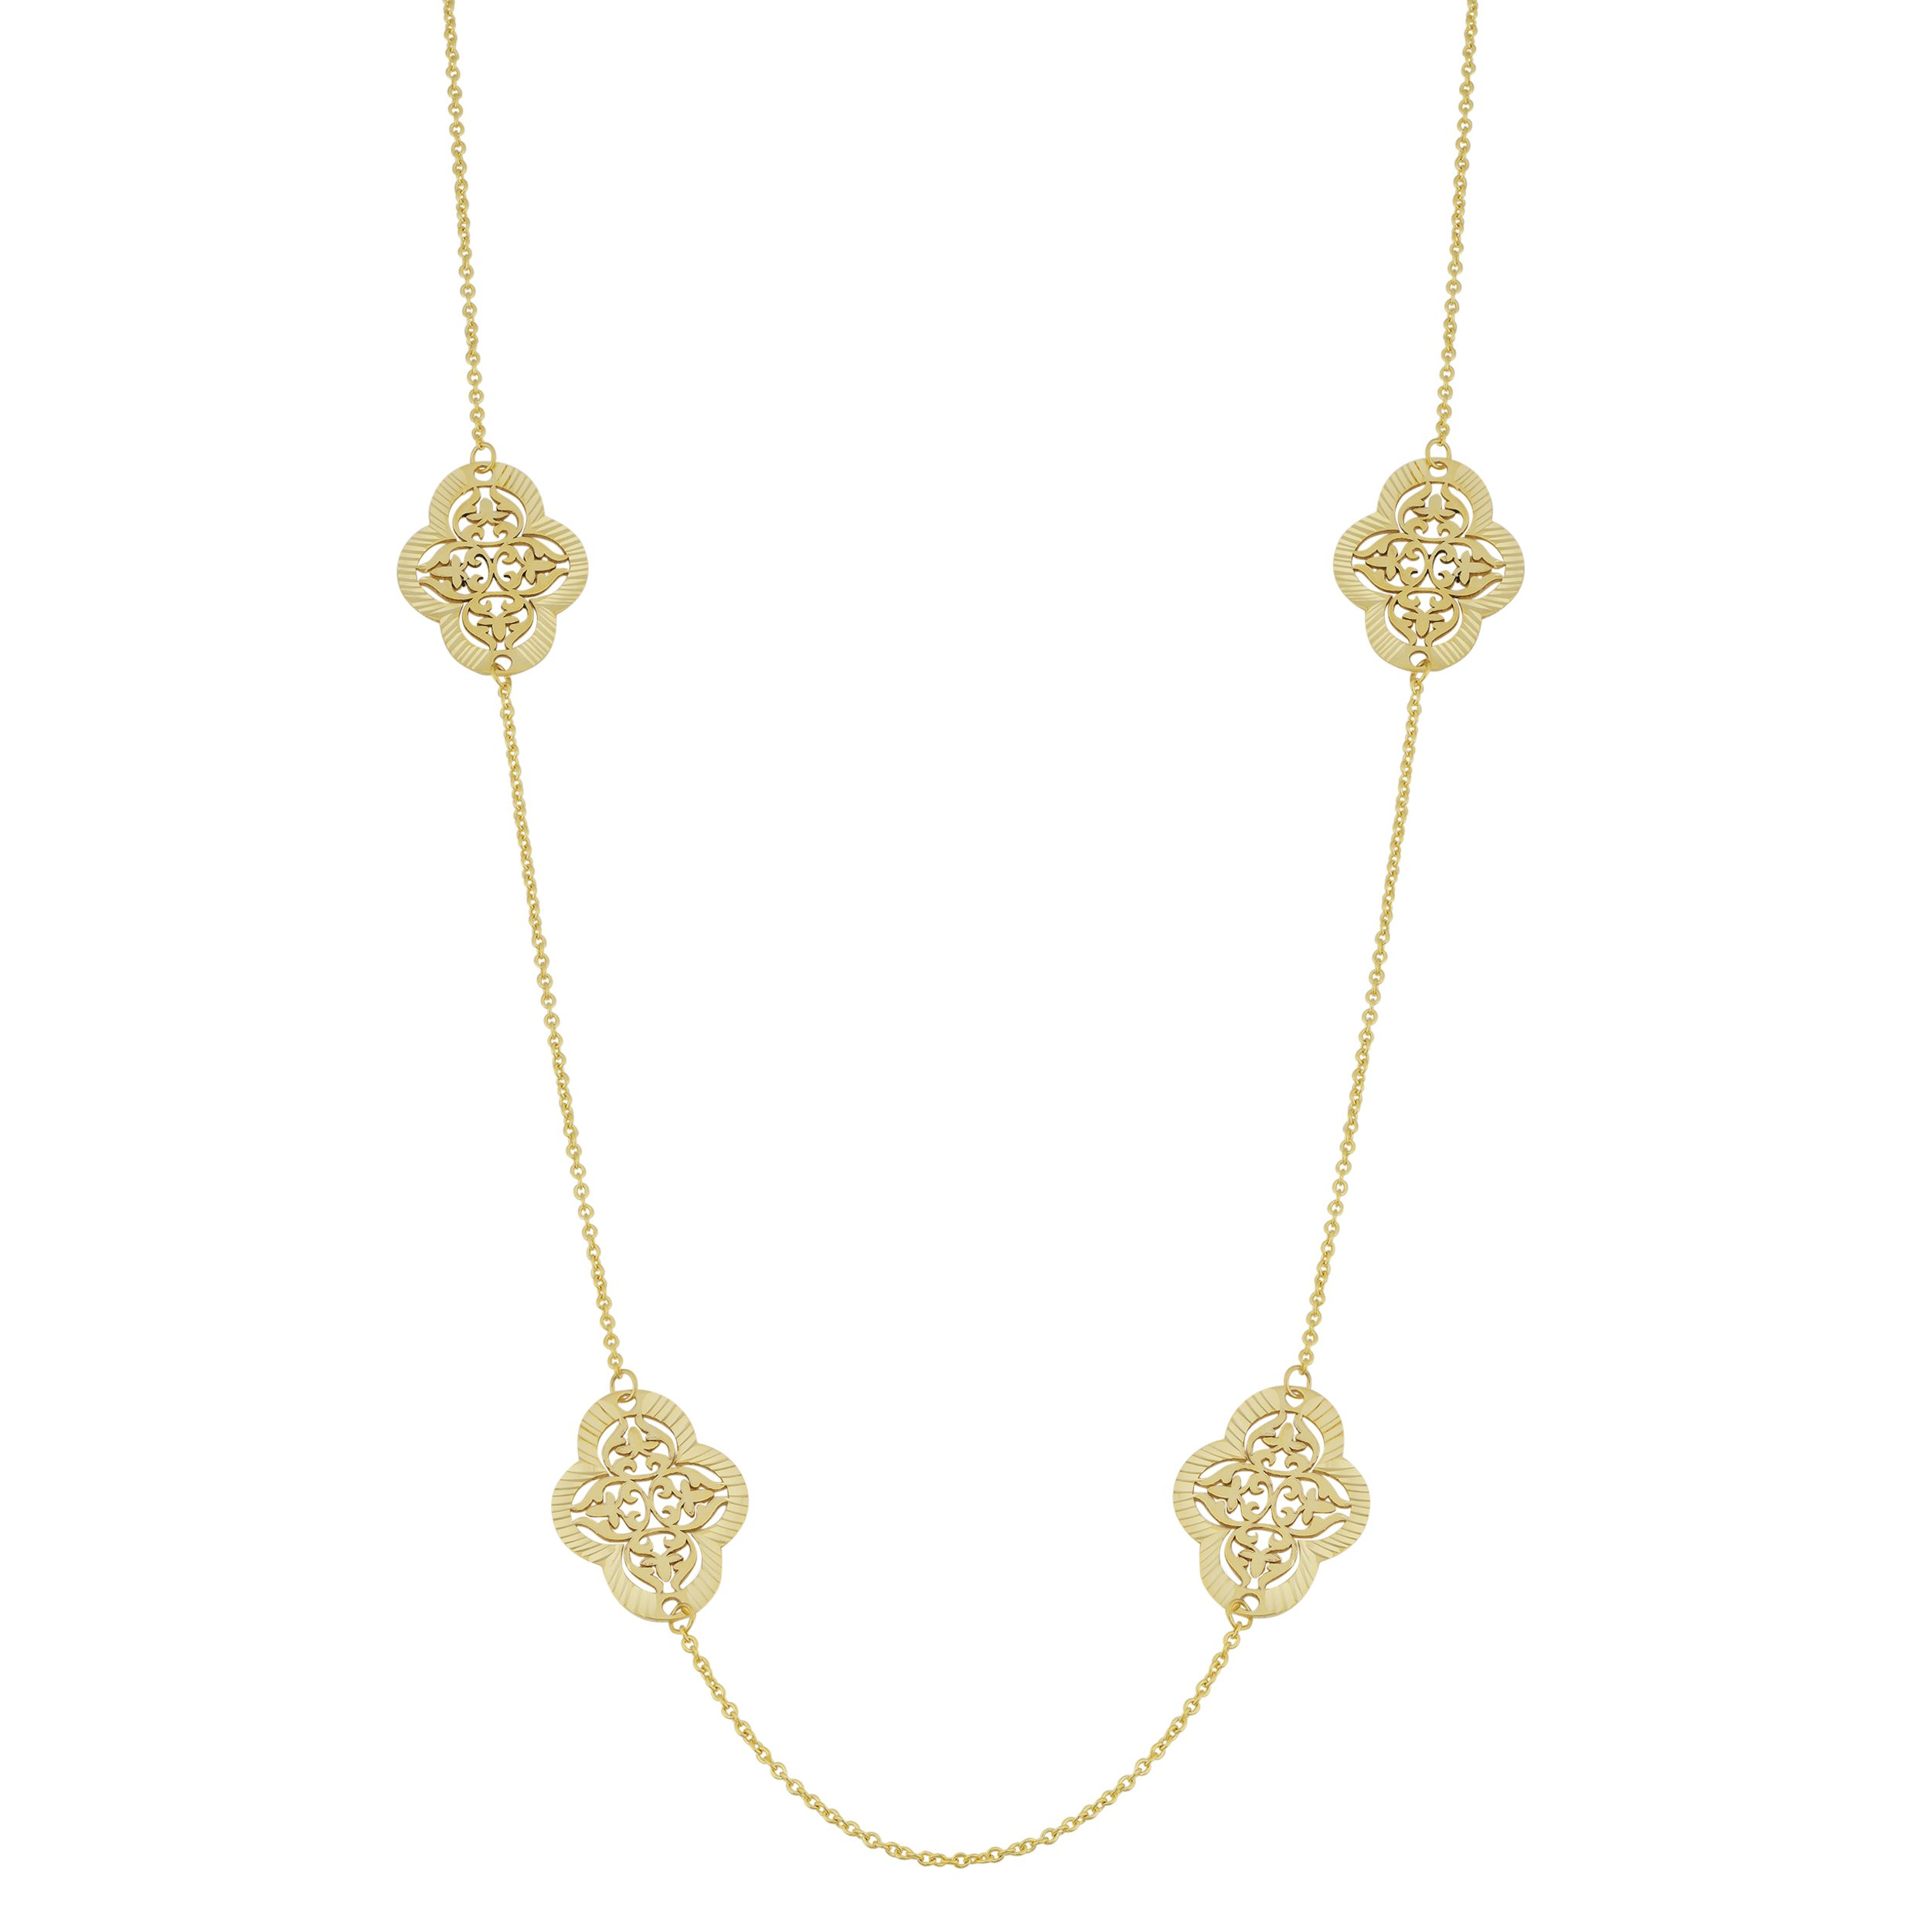 14k Yellow Gold Filigree Clover Flower Station Long Necklace (24 inch)